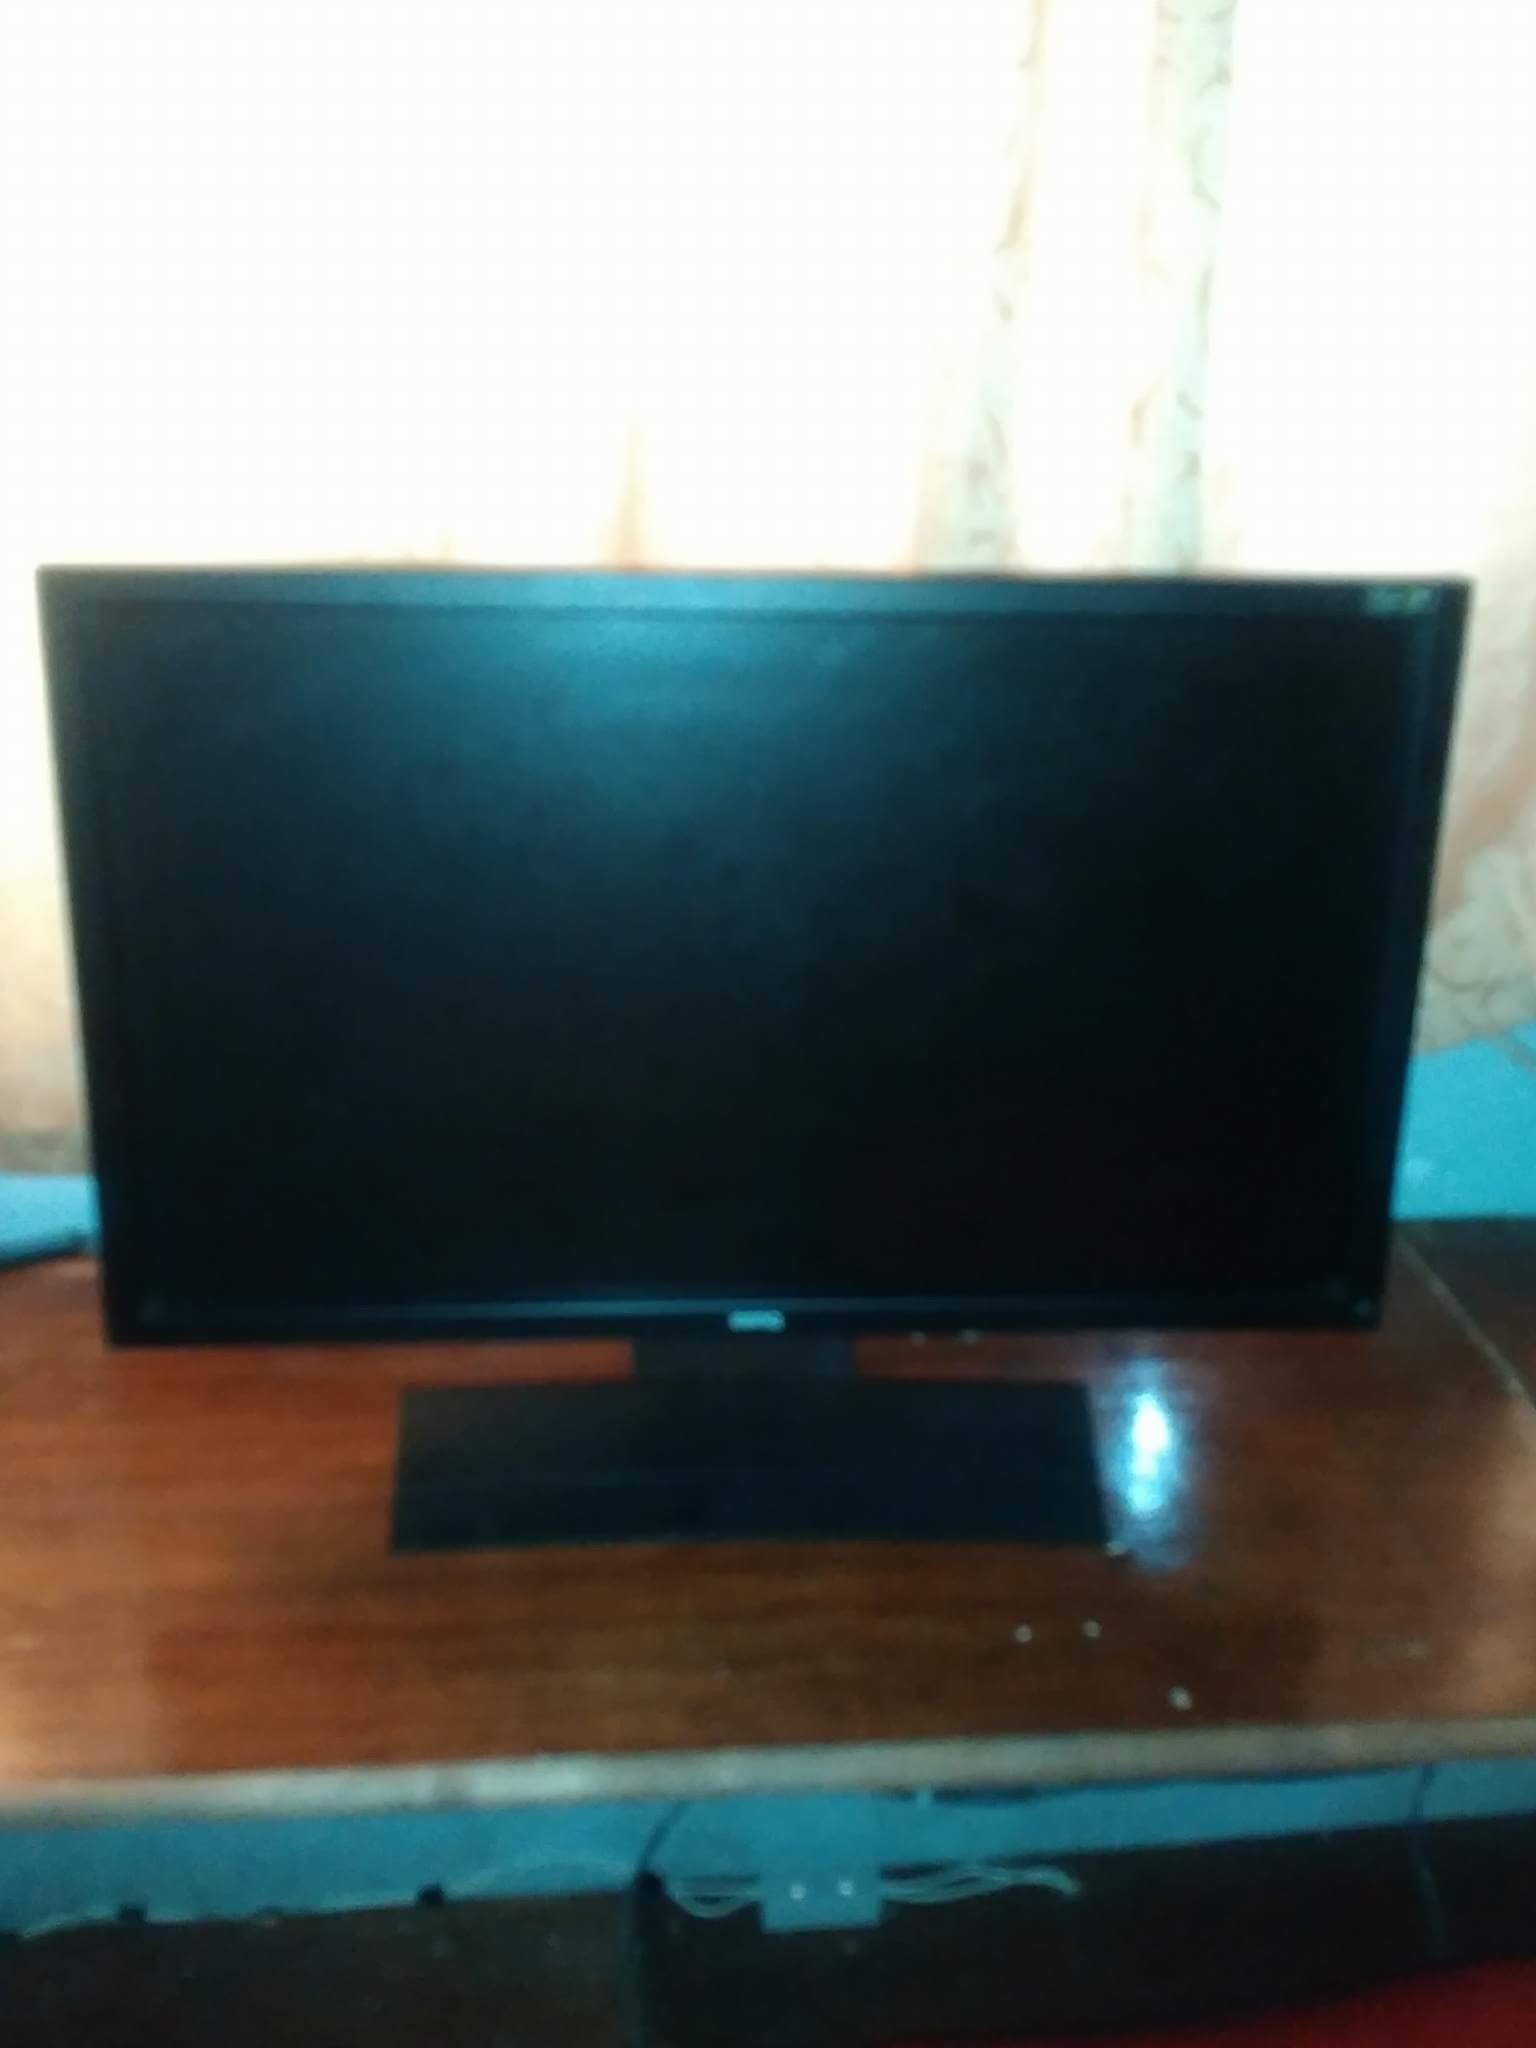 Rush Sale 3 Pc Gaming Units Processor 4th Gen I5 29 31 33 60000 Php Ghz